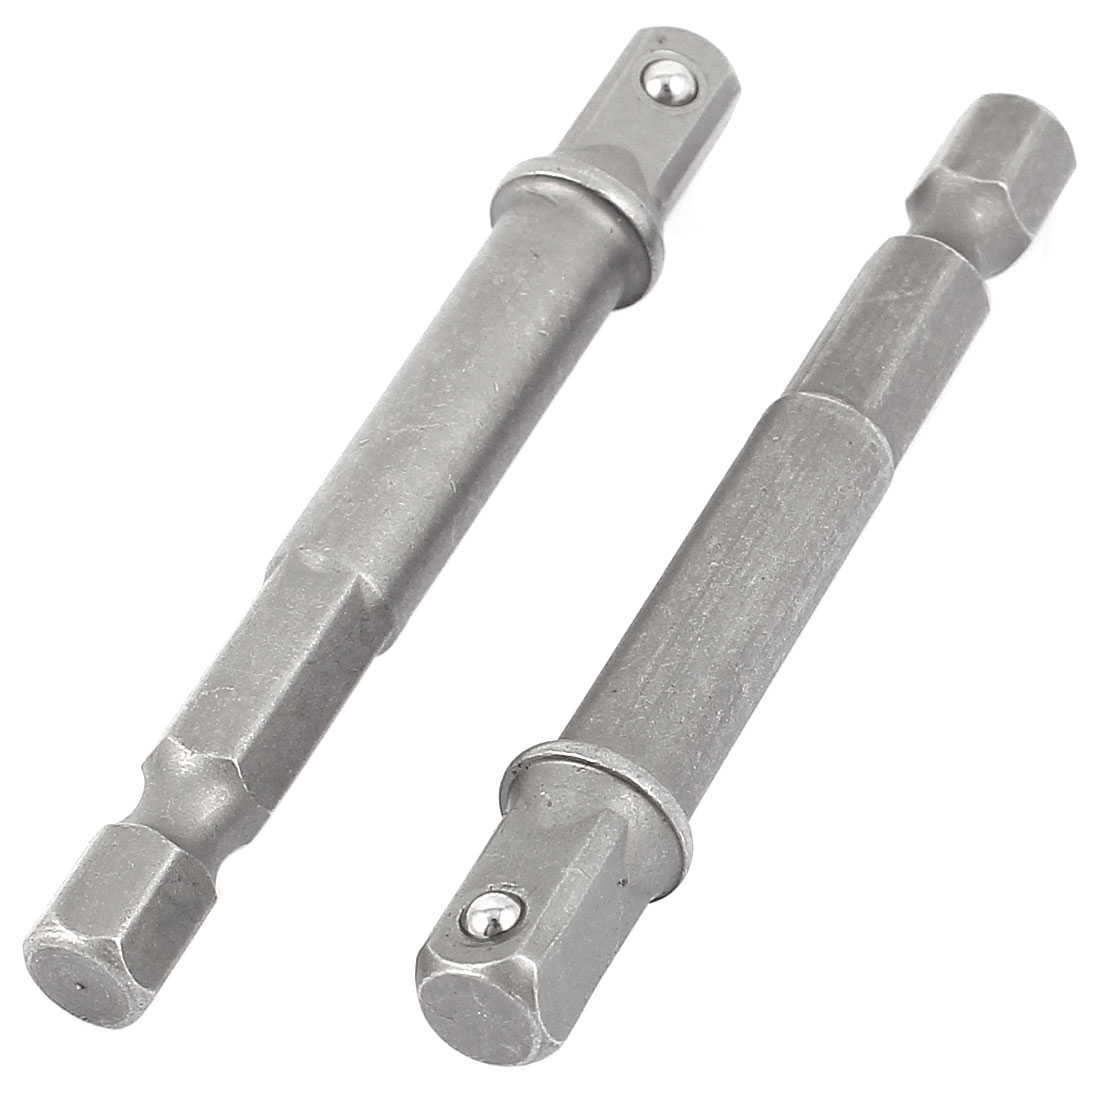 65mm Long 1/4' Hex Shank Driver Bit Nut Setter Socket Adapter 2PCS